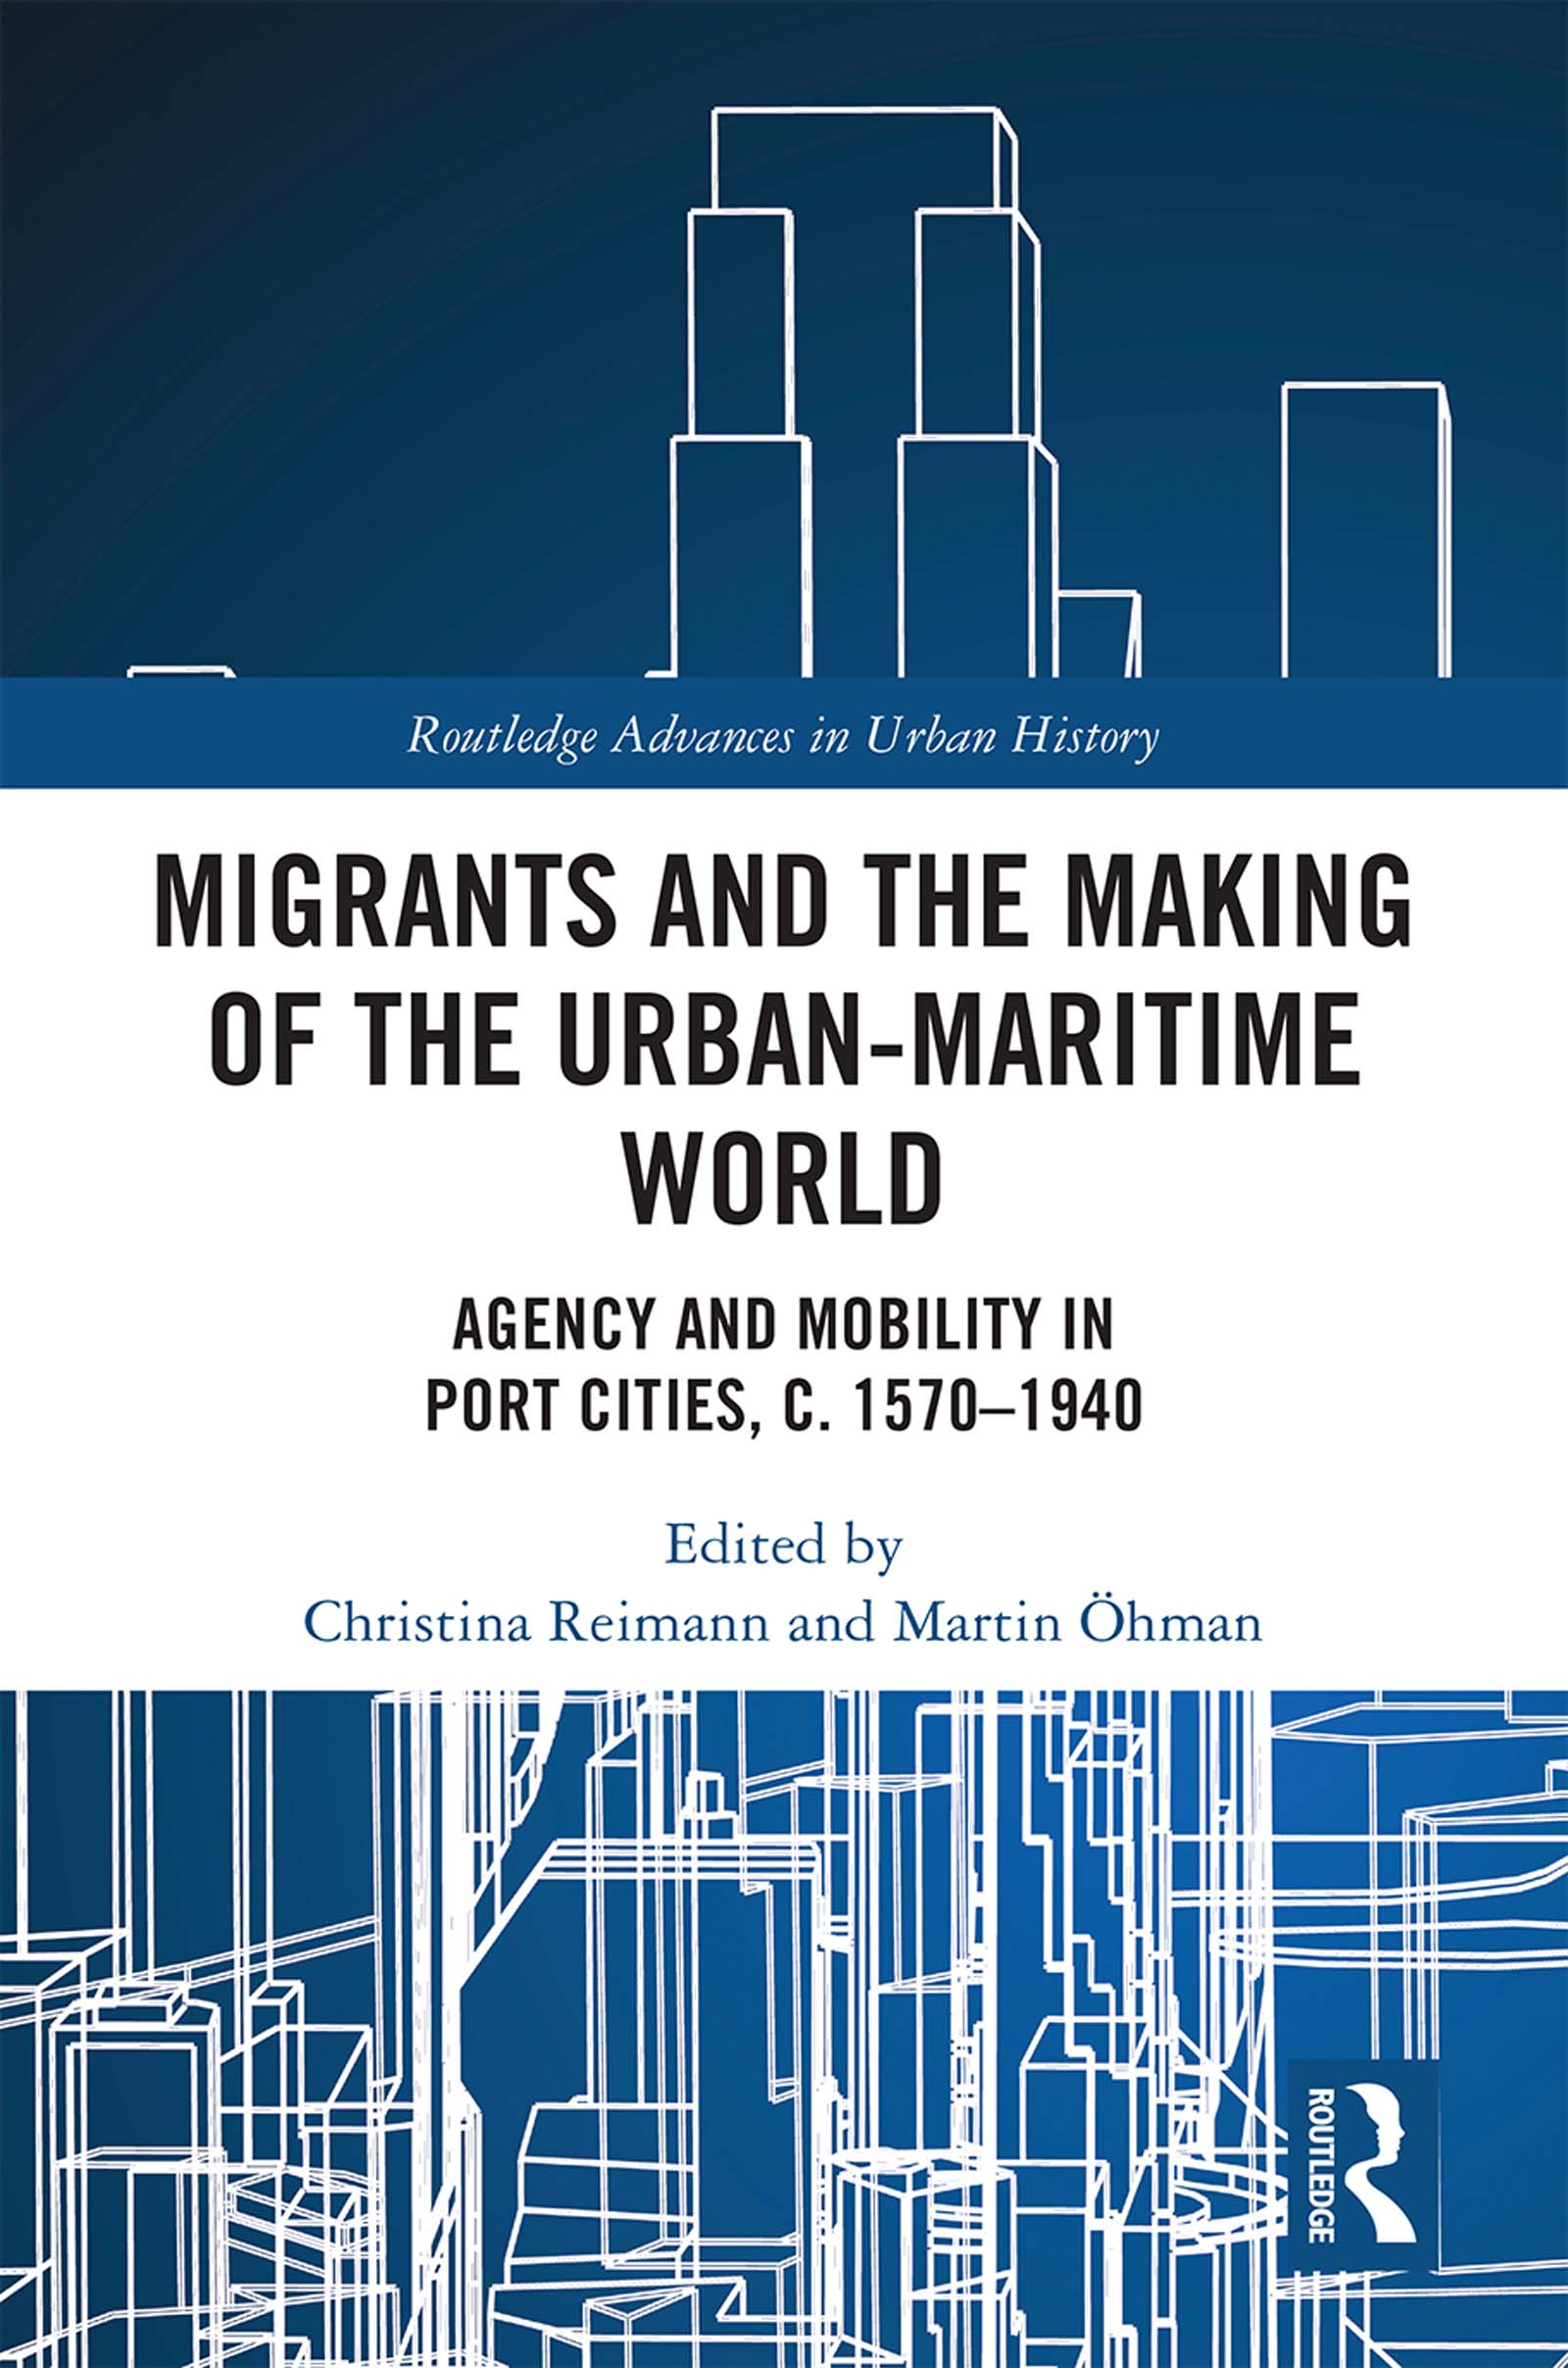 Migrants and the Making of the Urban-Maritime World